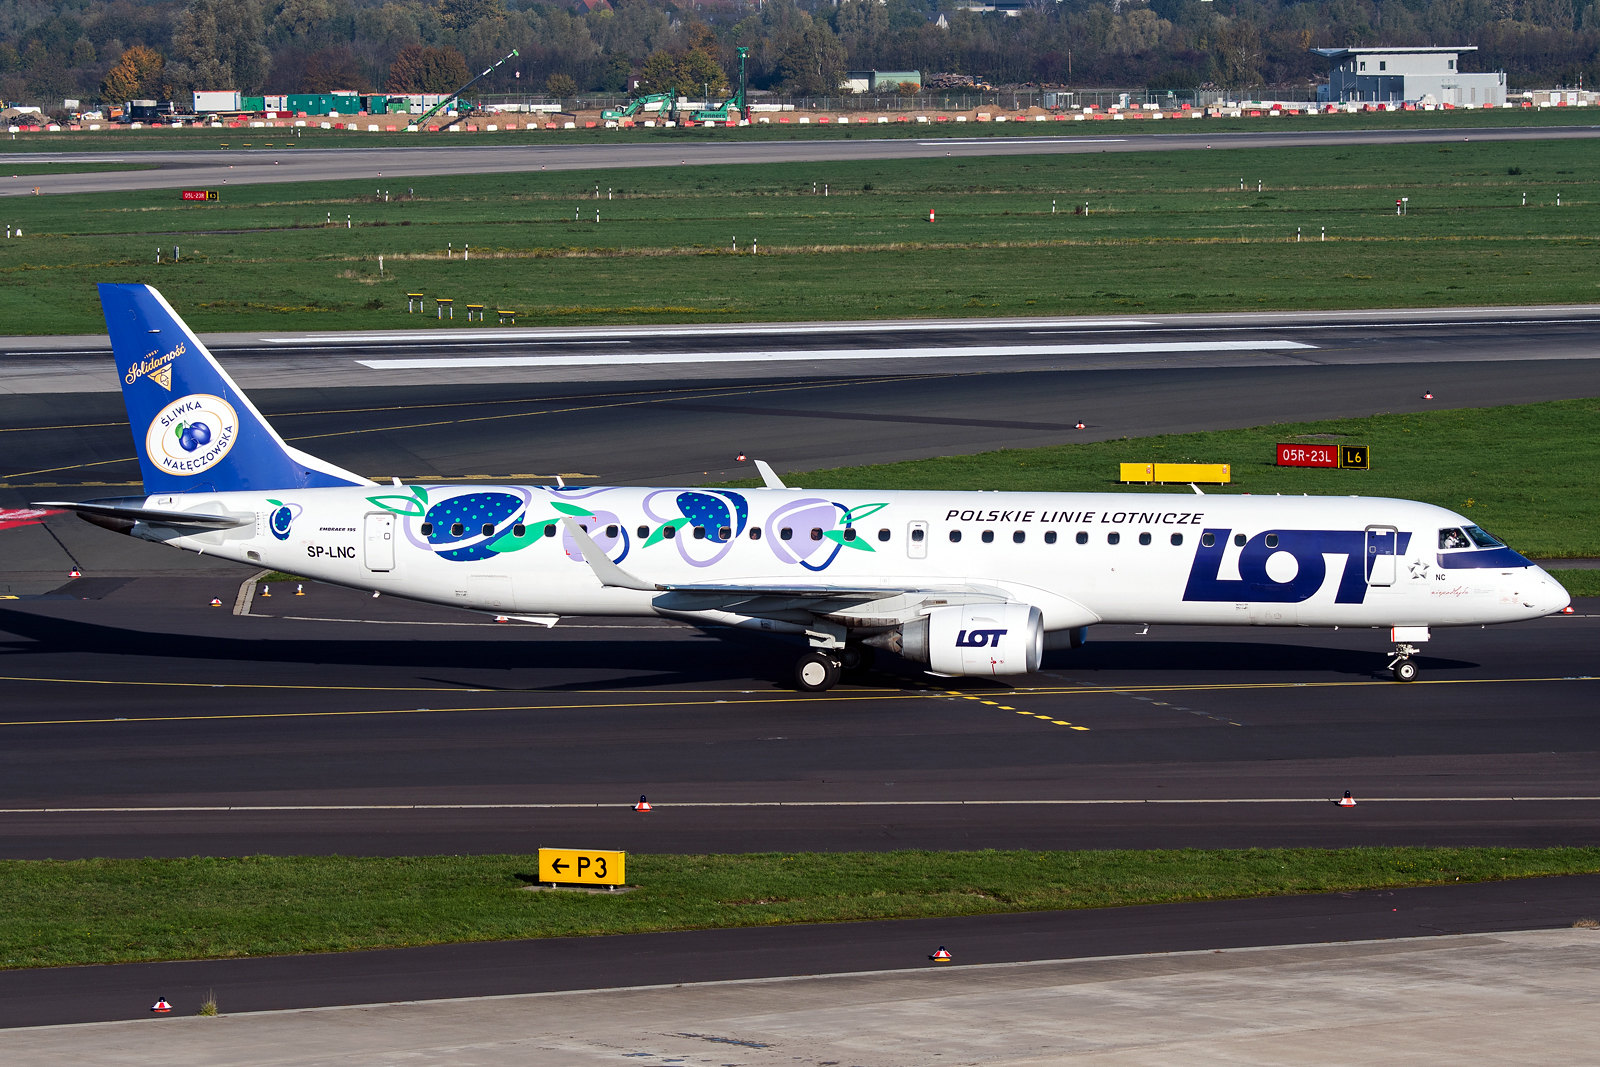 SP-LNC | Embraer ERJ-195LR | LOT - Polish Airlines